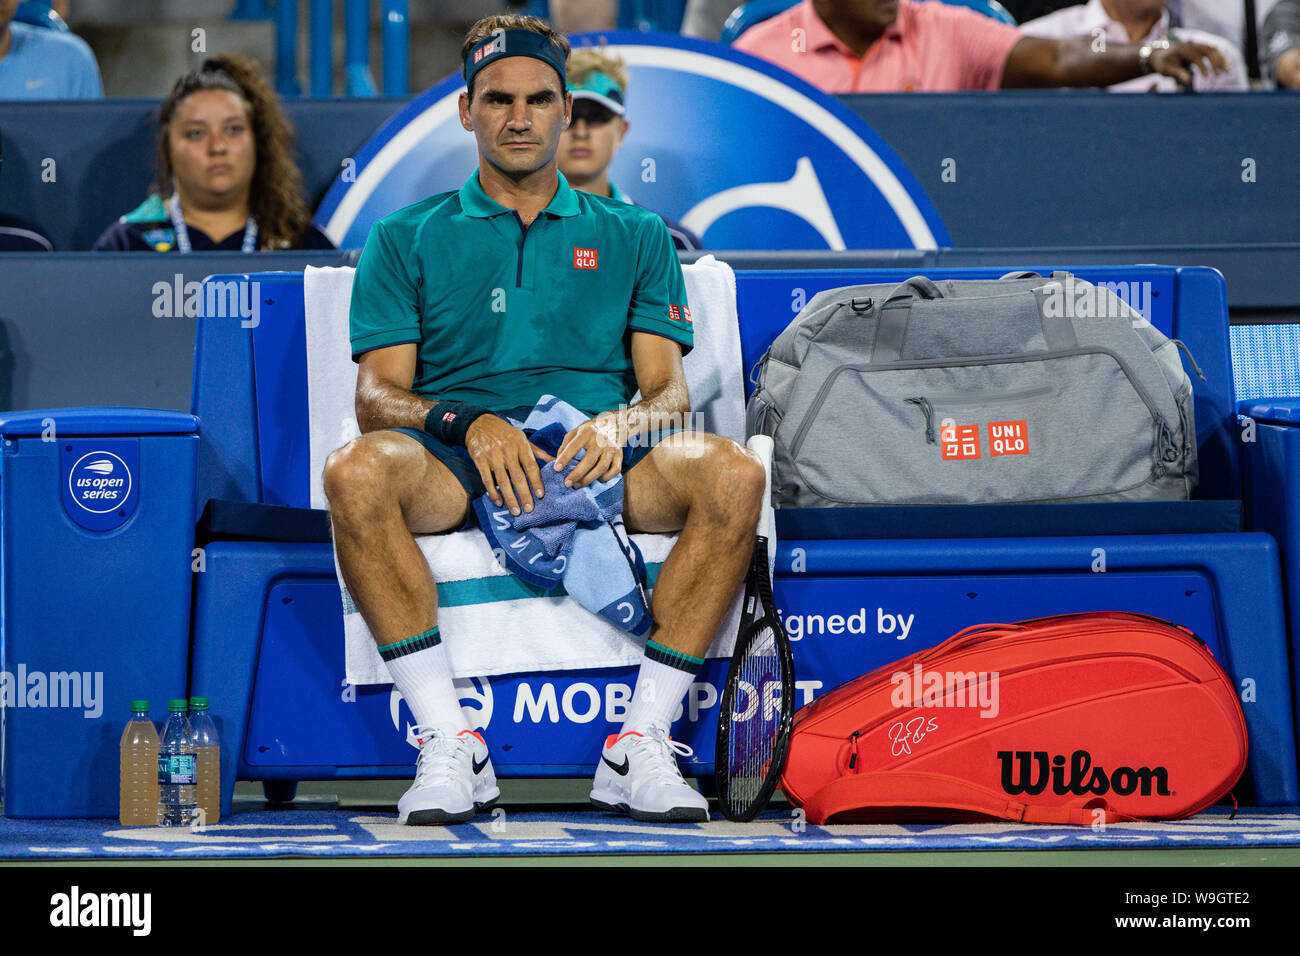 Mason, Ohio, USA. 13th Aug, 2019. Roger Federer, (SUI) rests between sets during Tuesday's round of the Western and Southern Open at the Lindner Family Tennis Center, Mason, Oh. Credit: Scott Stuart/ZUMA Wire/Alamy Live News Stock Photo